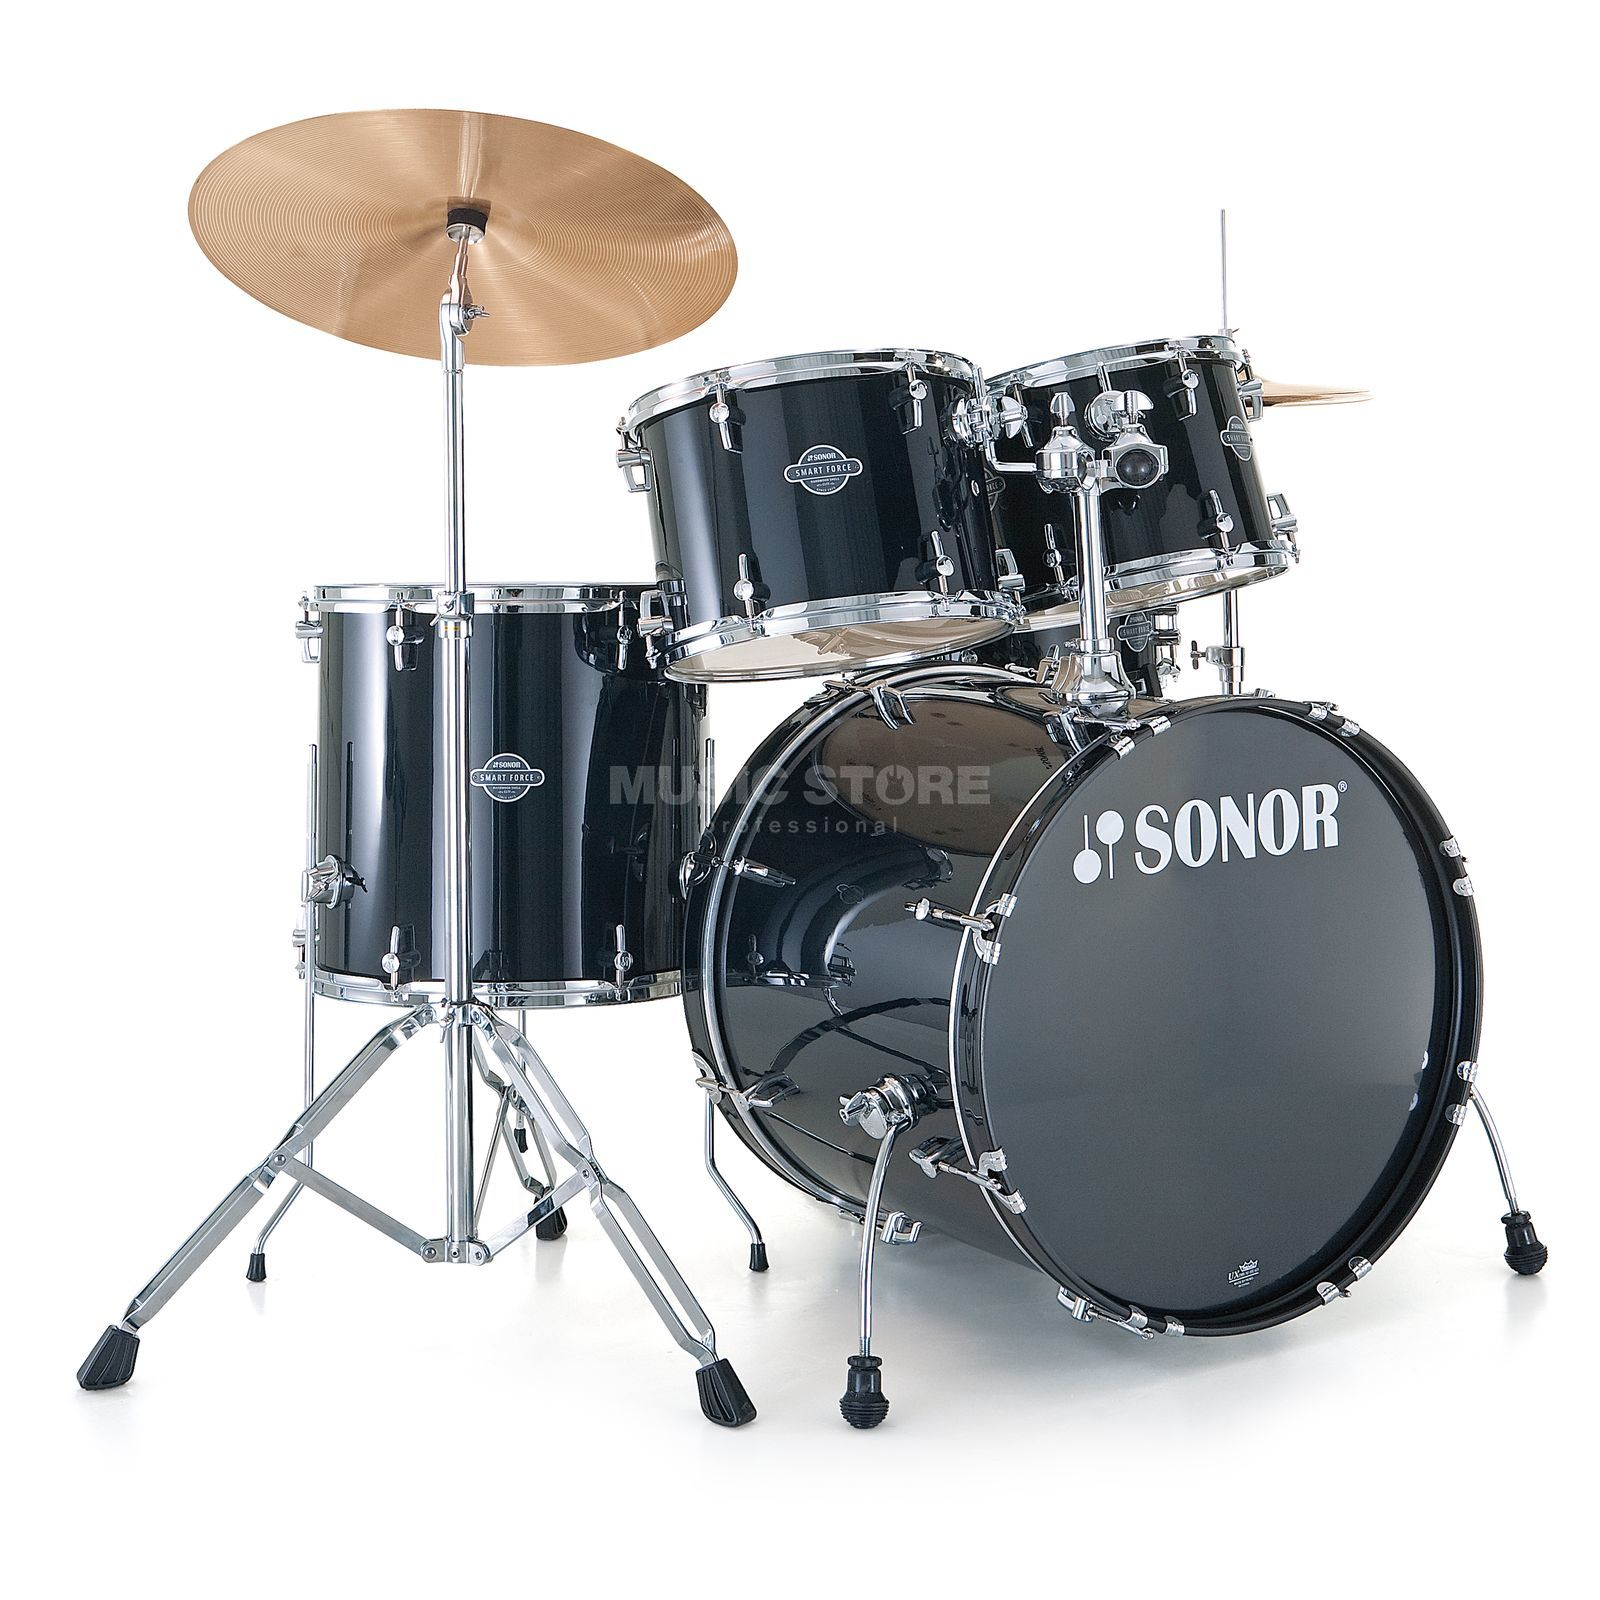 Sonor Smart Force Stage 2, Black #10, incl. Music Book Product Image